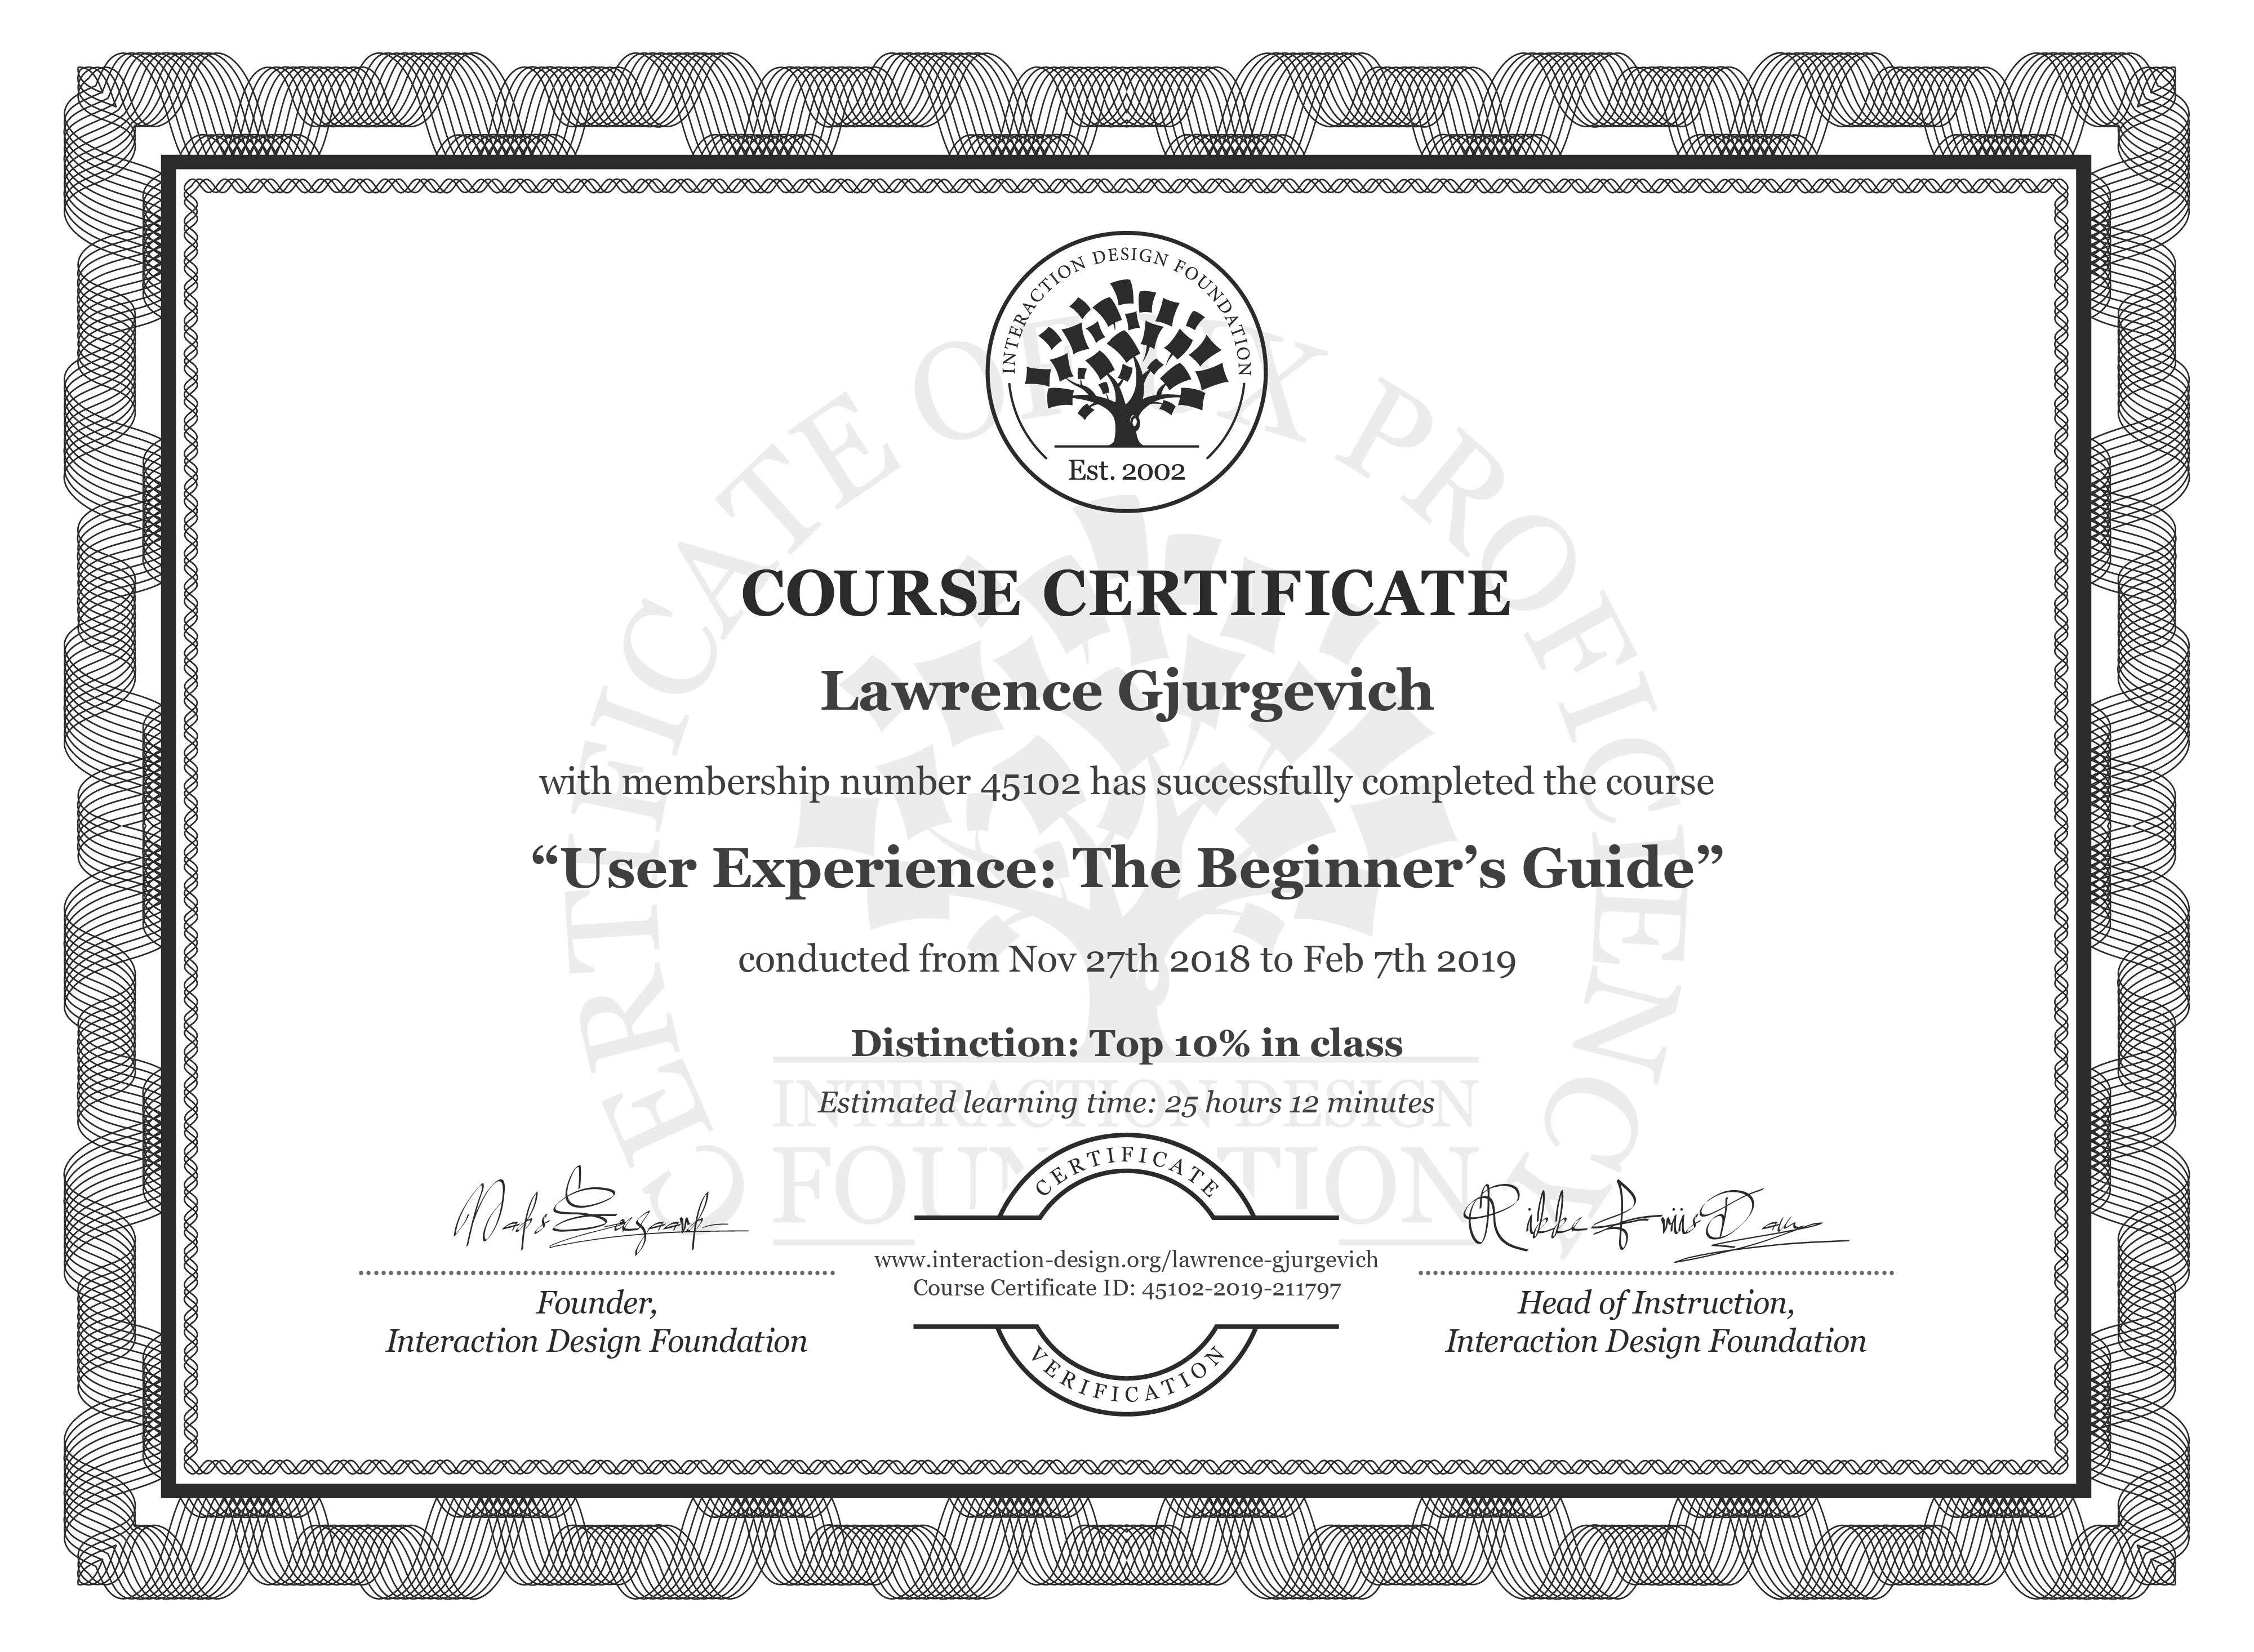 Lawrence Gjurgevich: Course Certificate - Become a UX Designer from Scratch